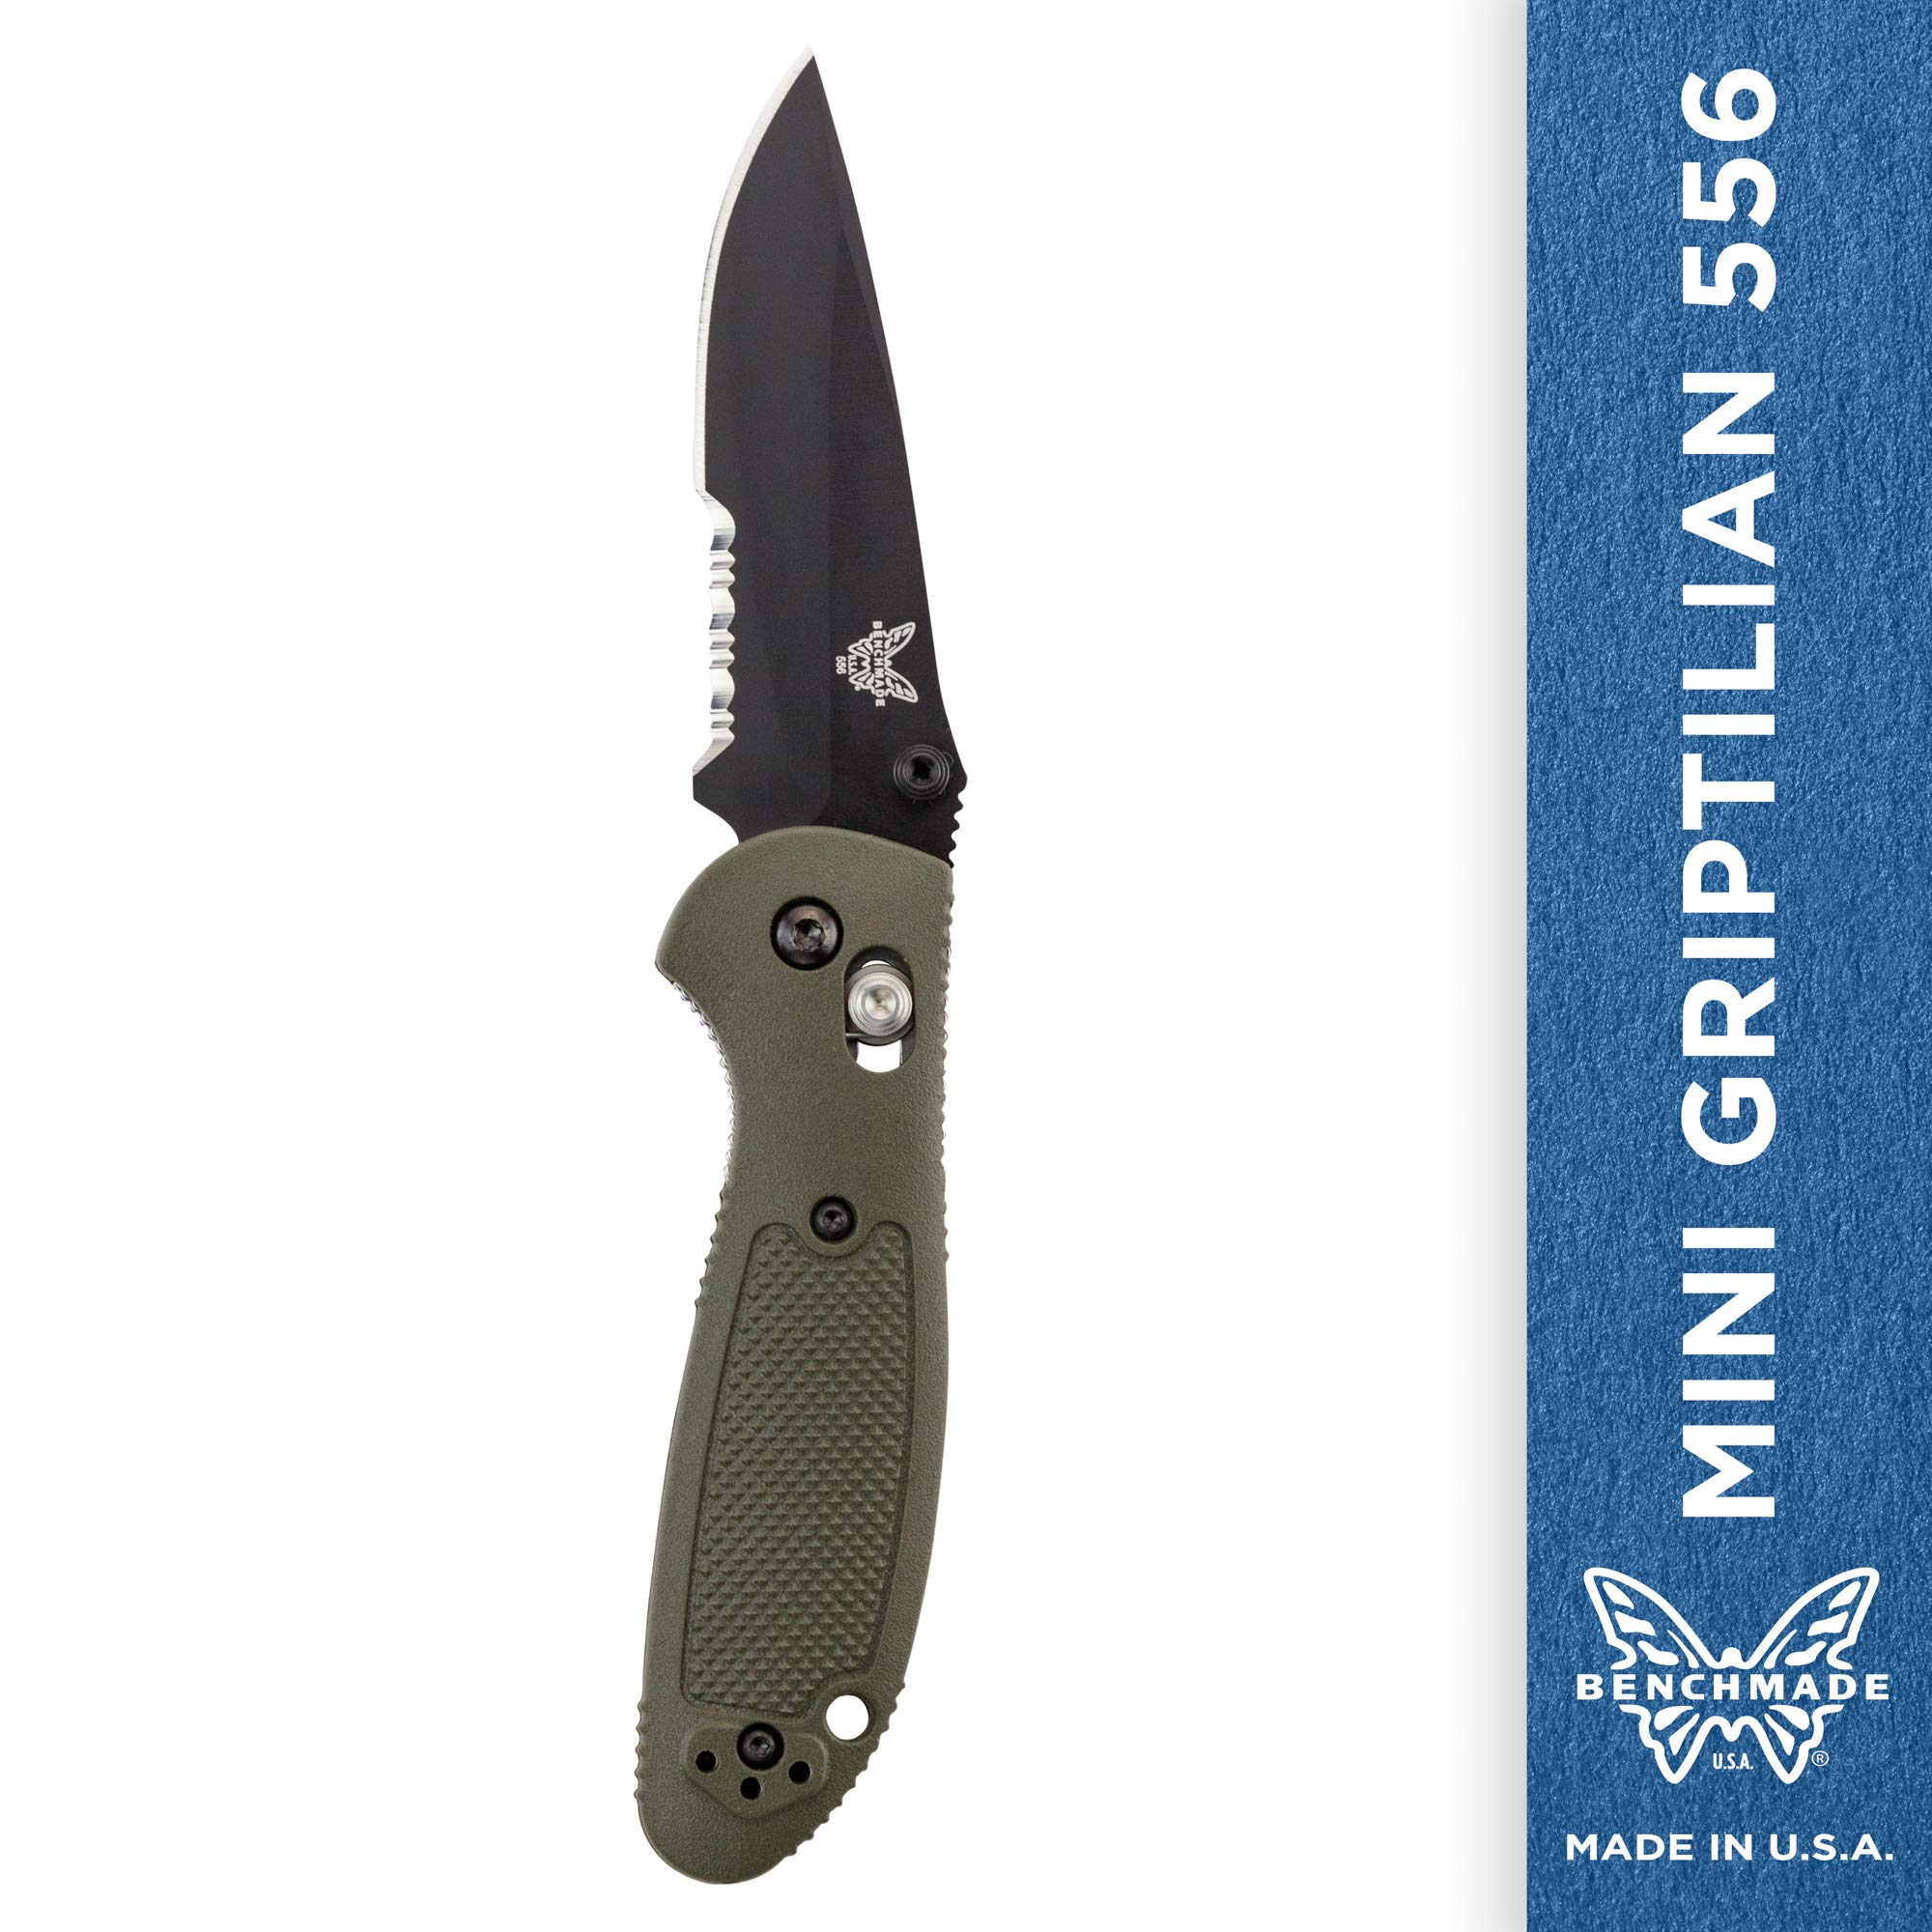 Benchmade - Mini Griptilian 556 EDC Manual Open Folding Knife Made in USA with CPM-S30V Steel, Drop-Point Blade, Serrated Edge, Coated Finish, Olive Handle